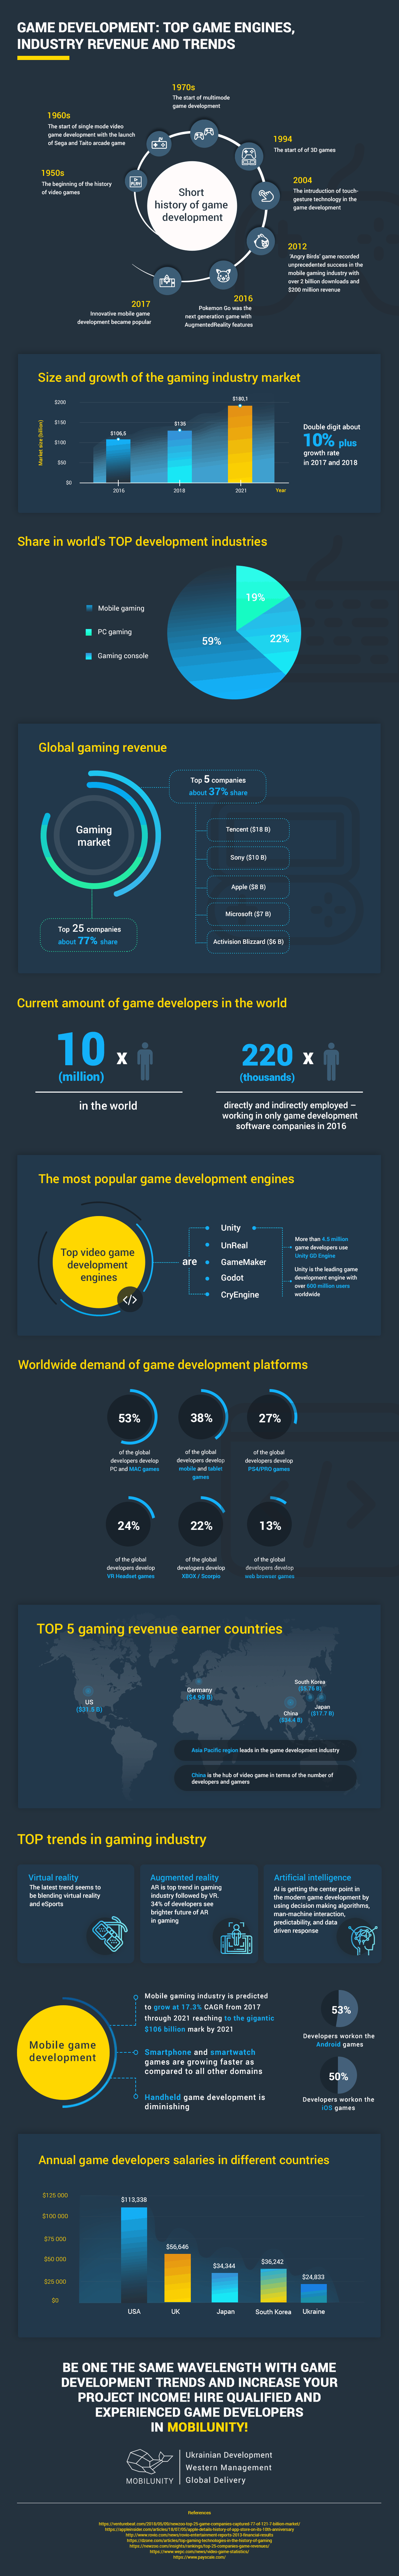 Game Development Outsourcing Trends